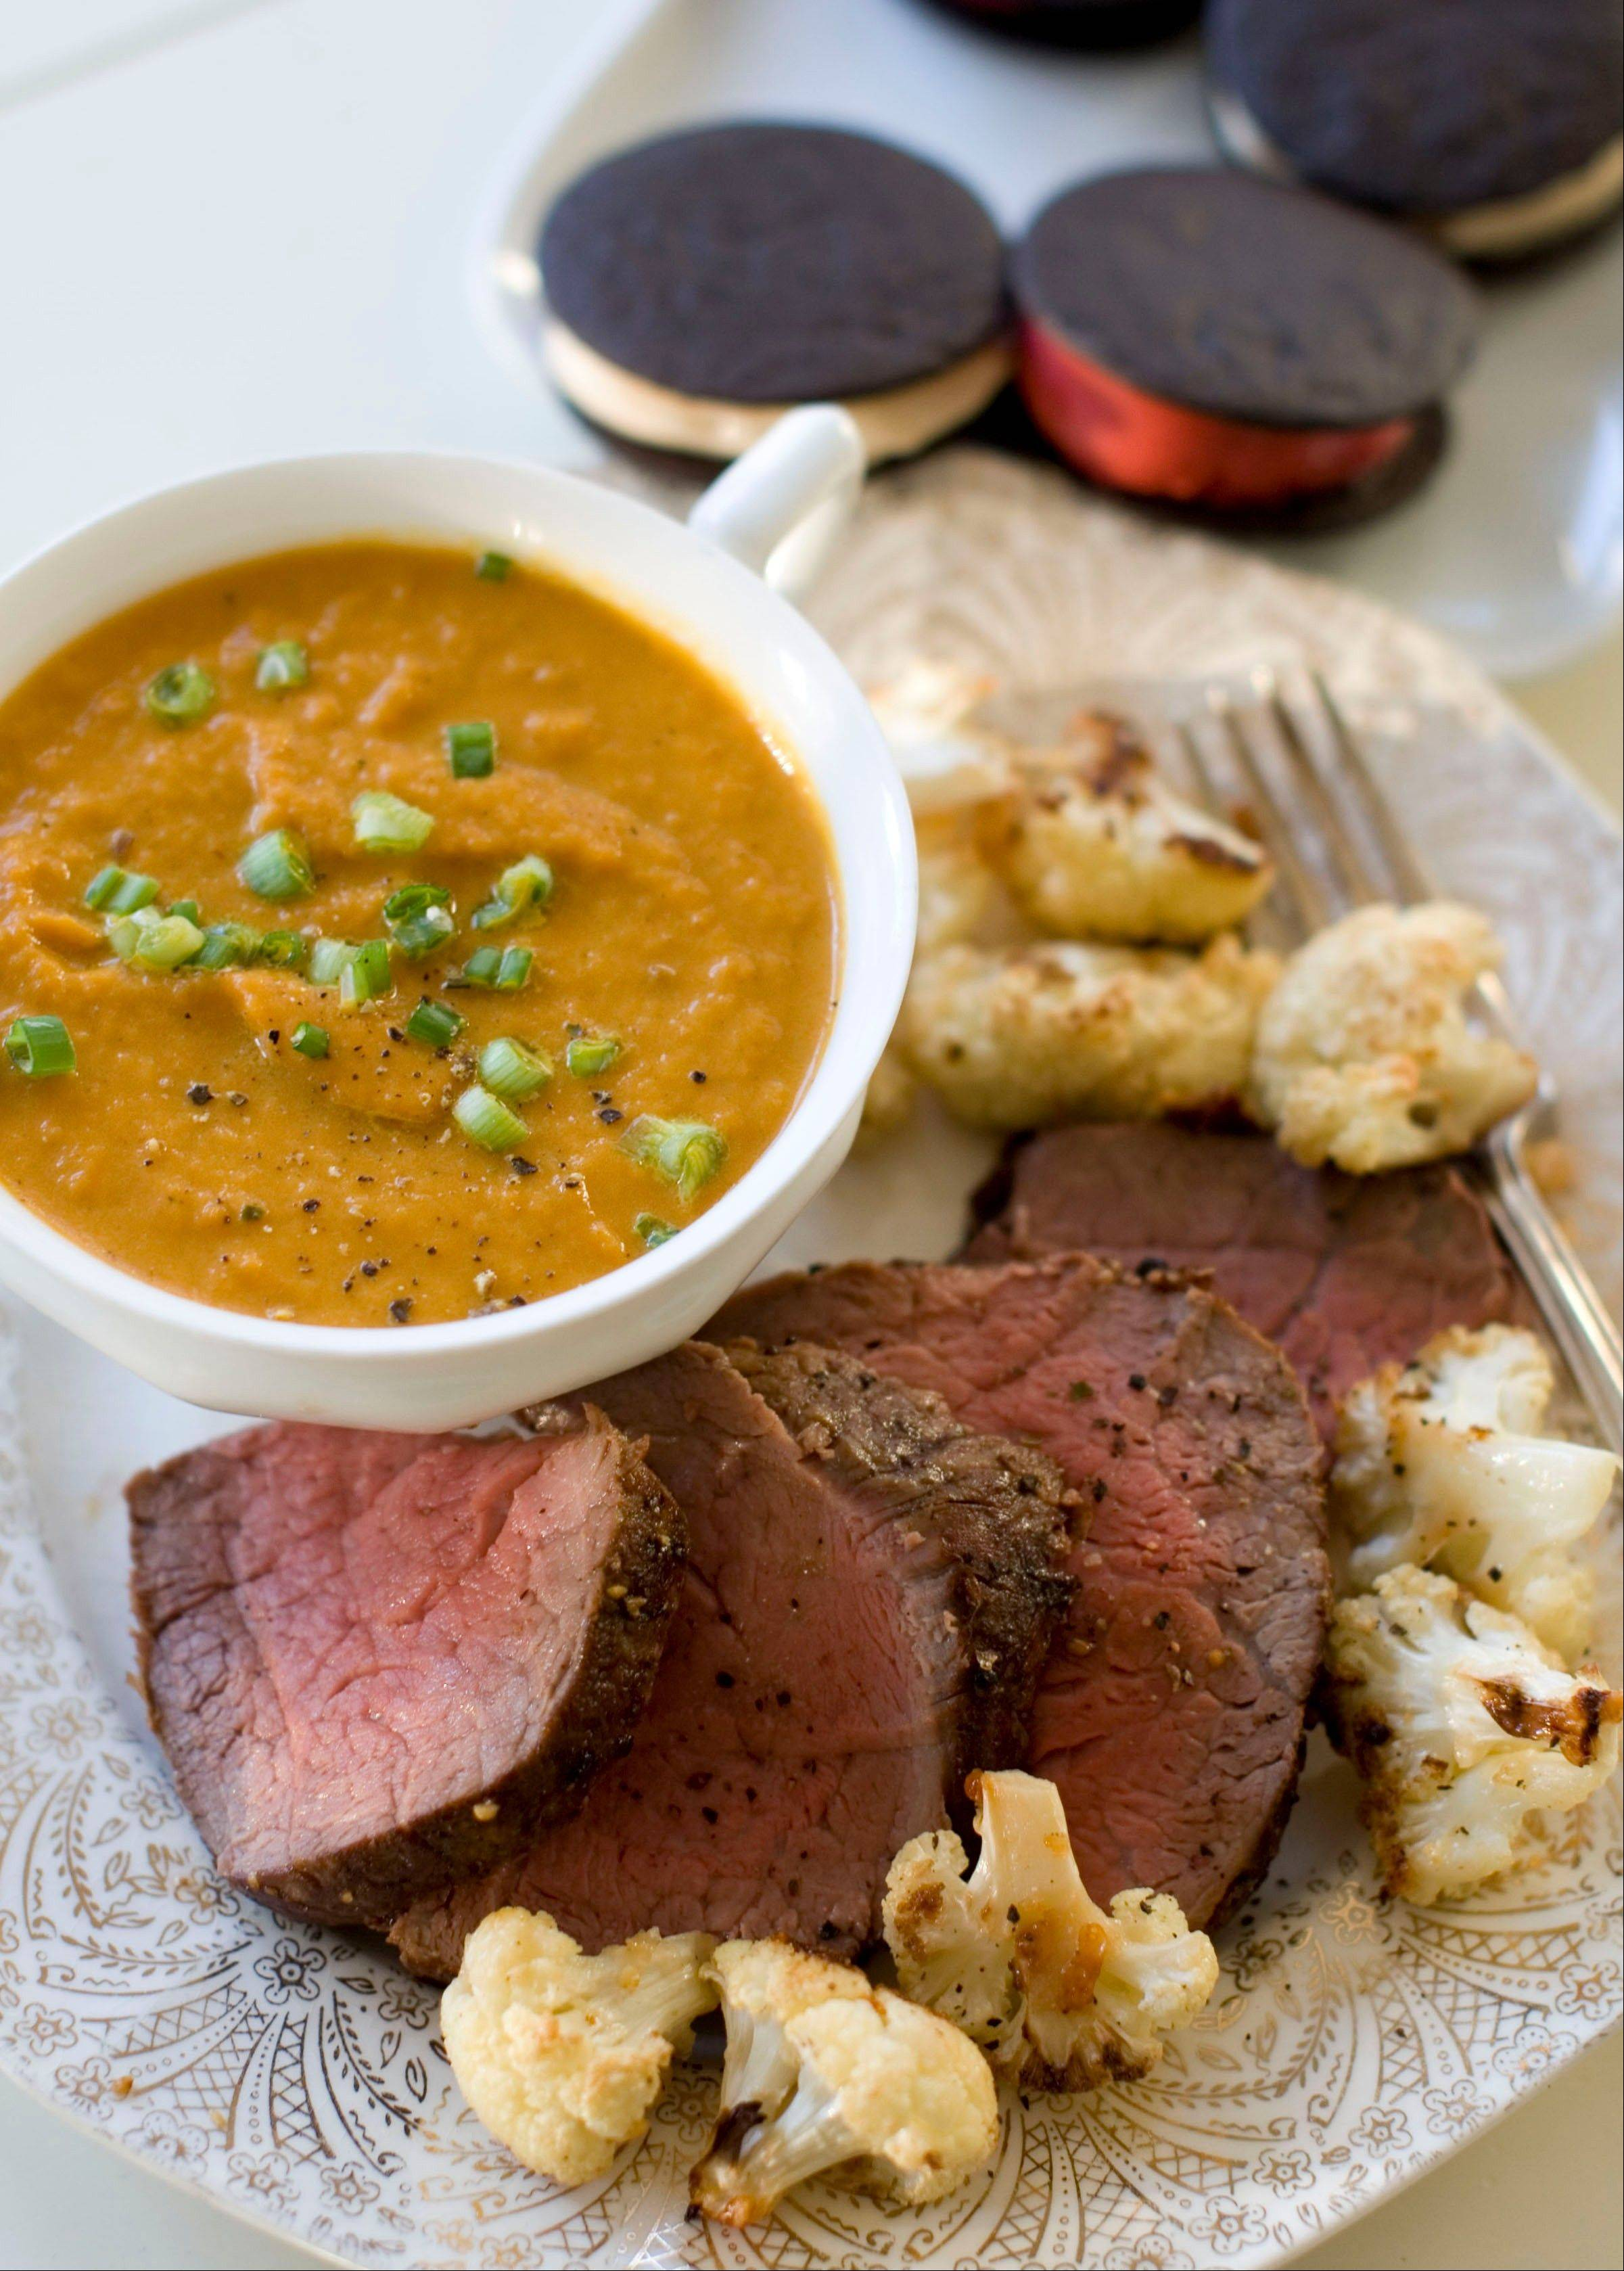 For a classic dinner without complicated prep, try spiced carrot soup, peppered filet roasted with parmesan roasted cauliflower and chocolate sorbet sandwiches.